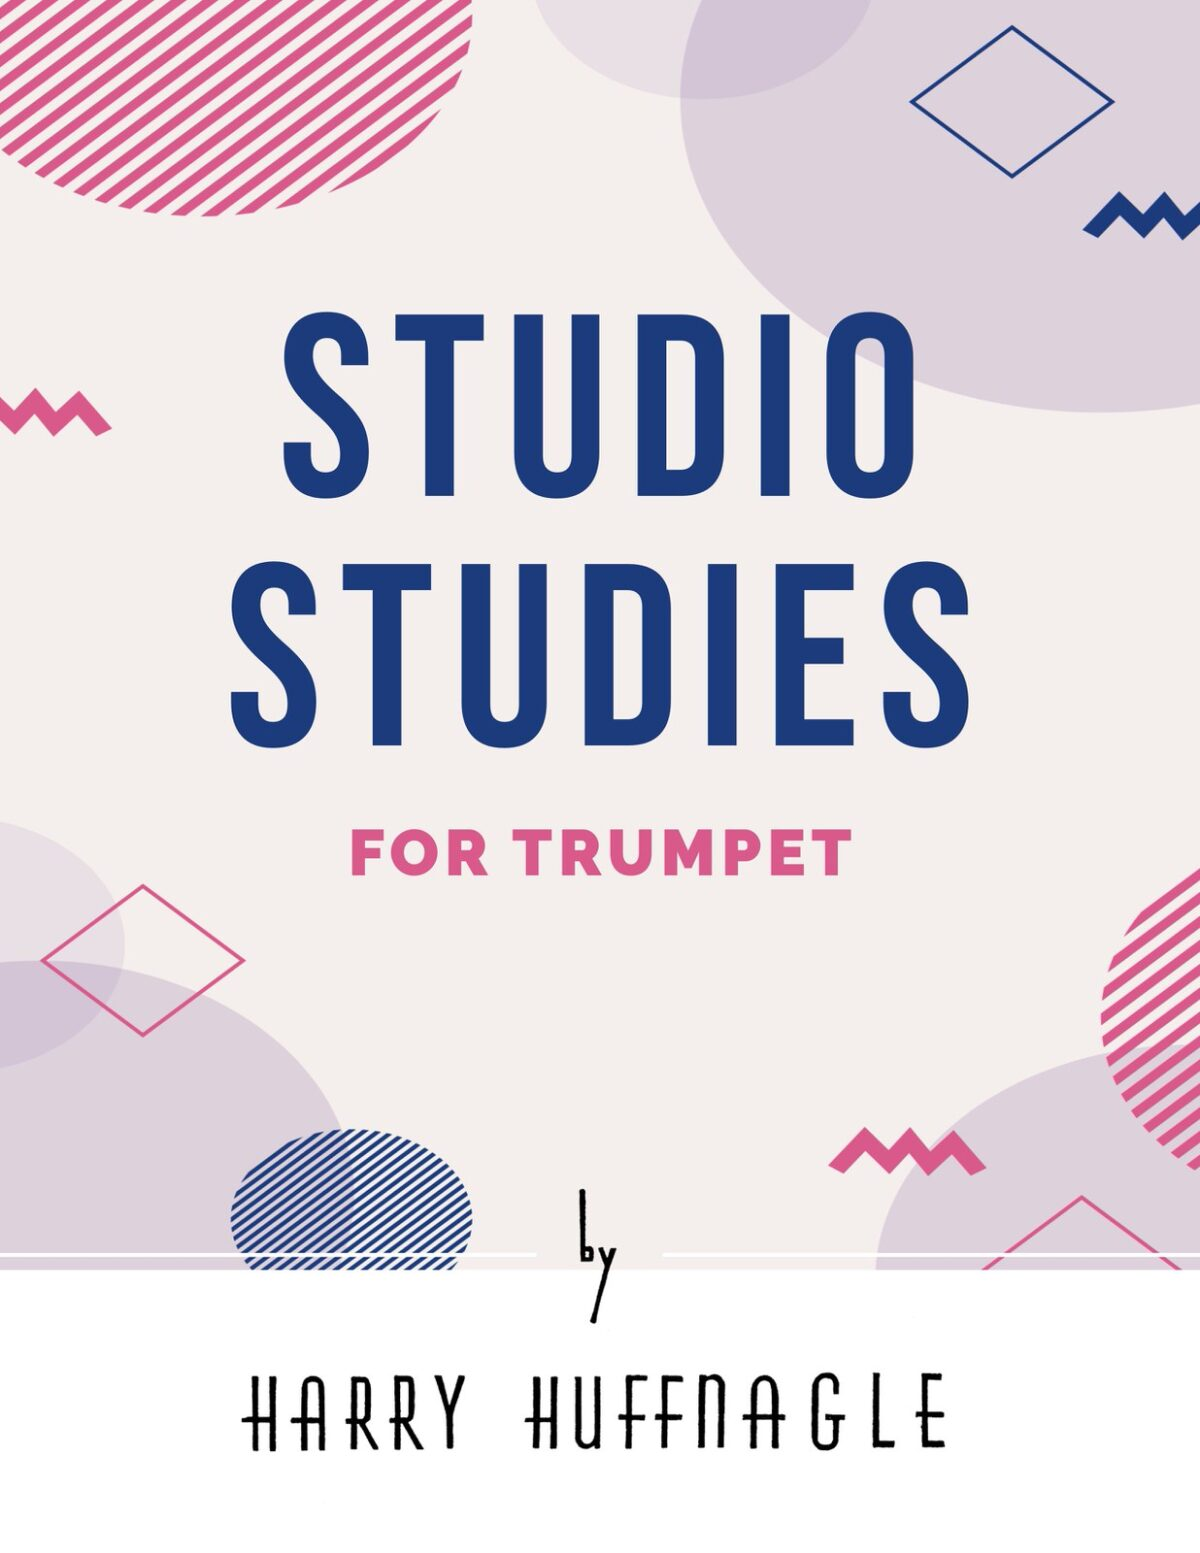 Huffnagle, Studio Studies for Trumpet-p01